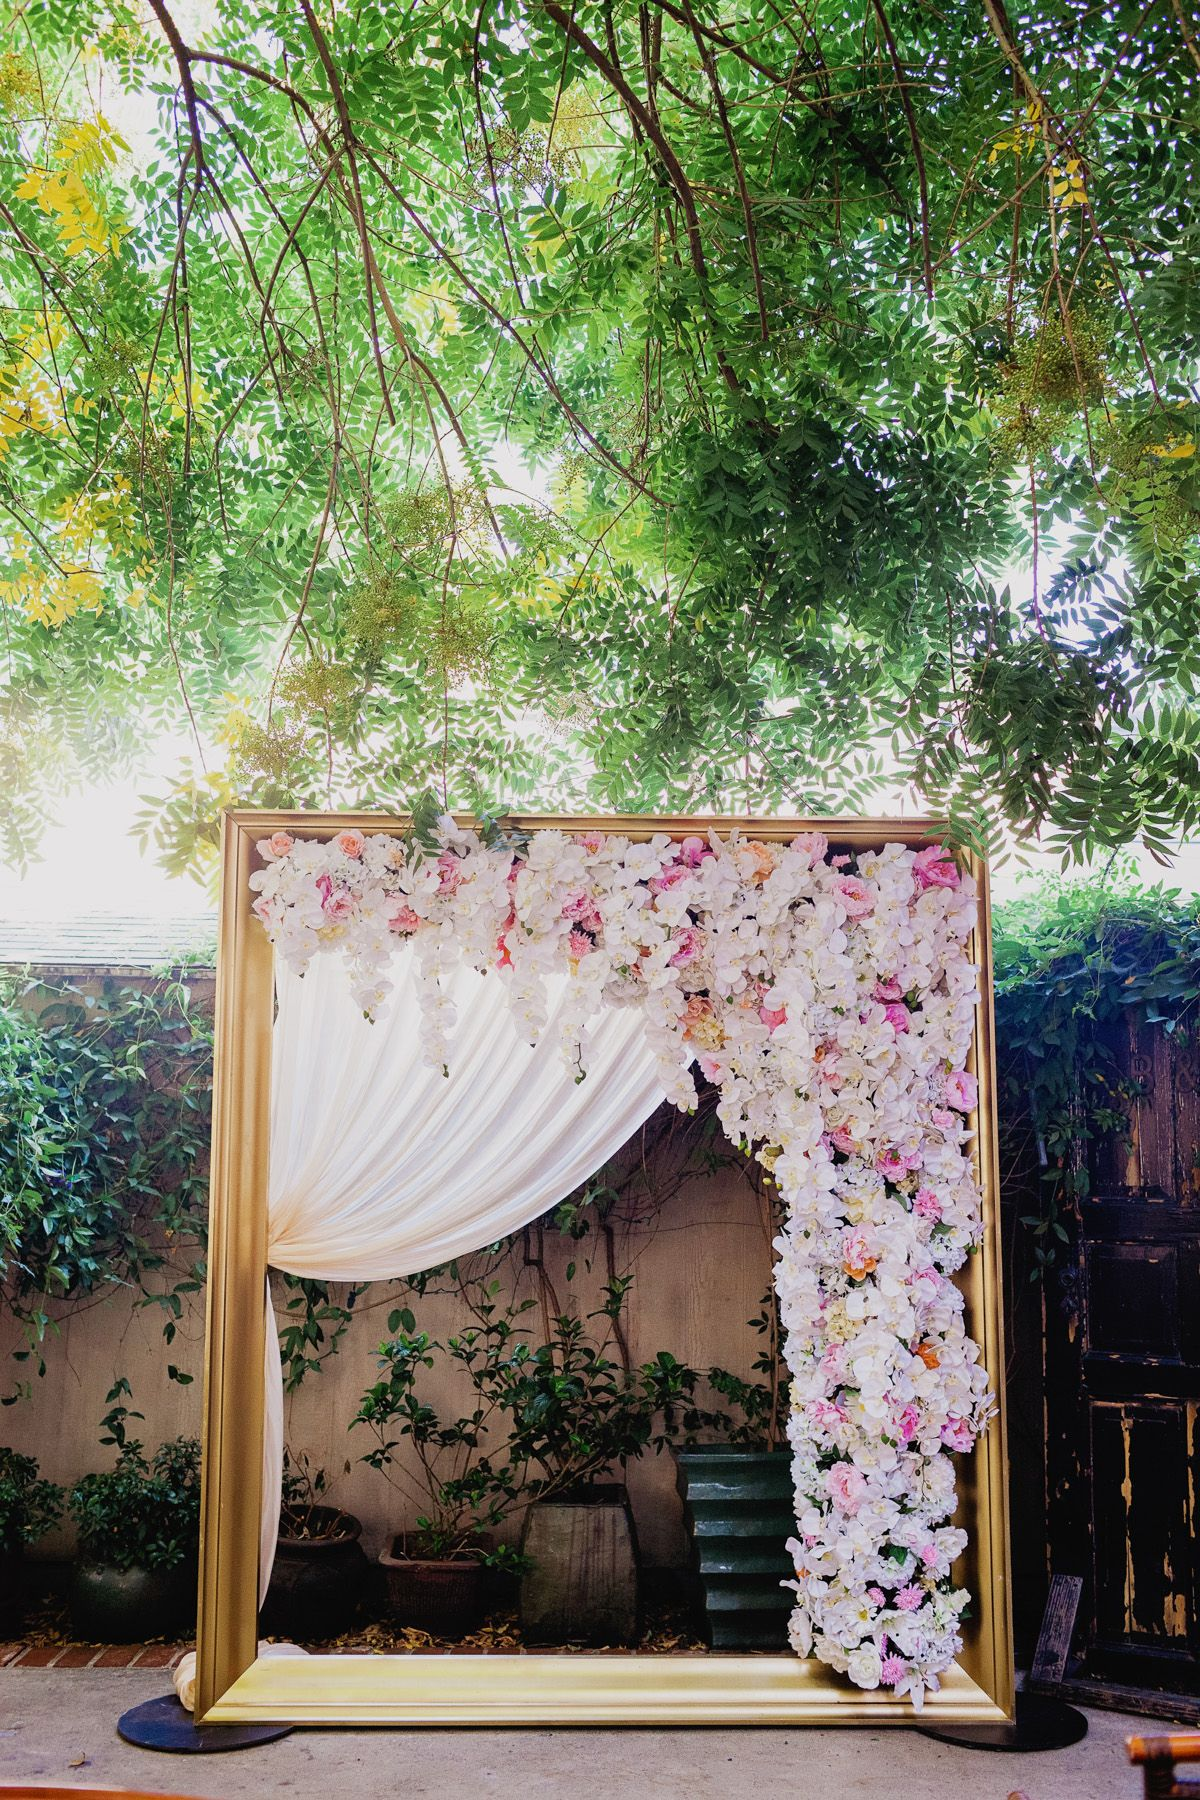 Gold Frame Backdrop With White Fabric On One Side And Pink